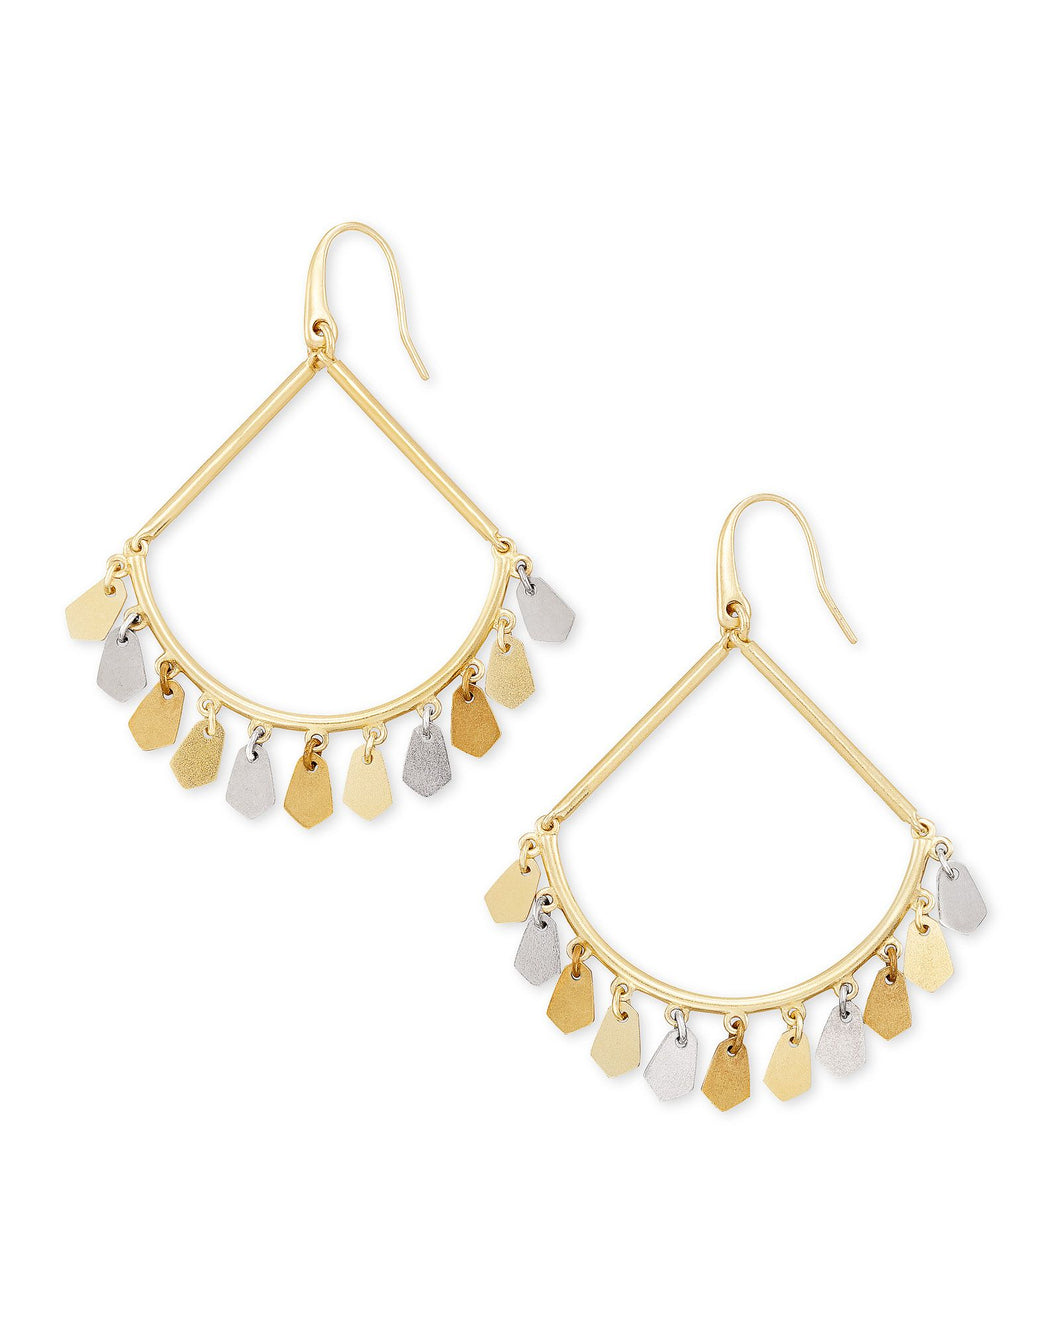 Sydney Drop Earrings